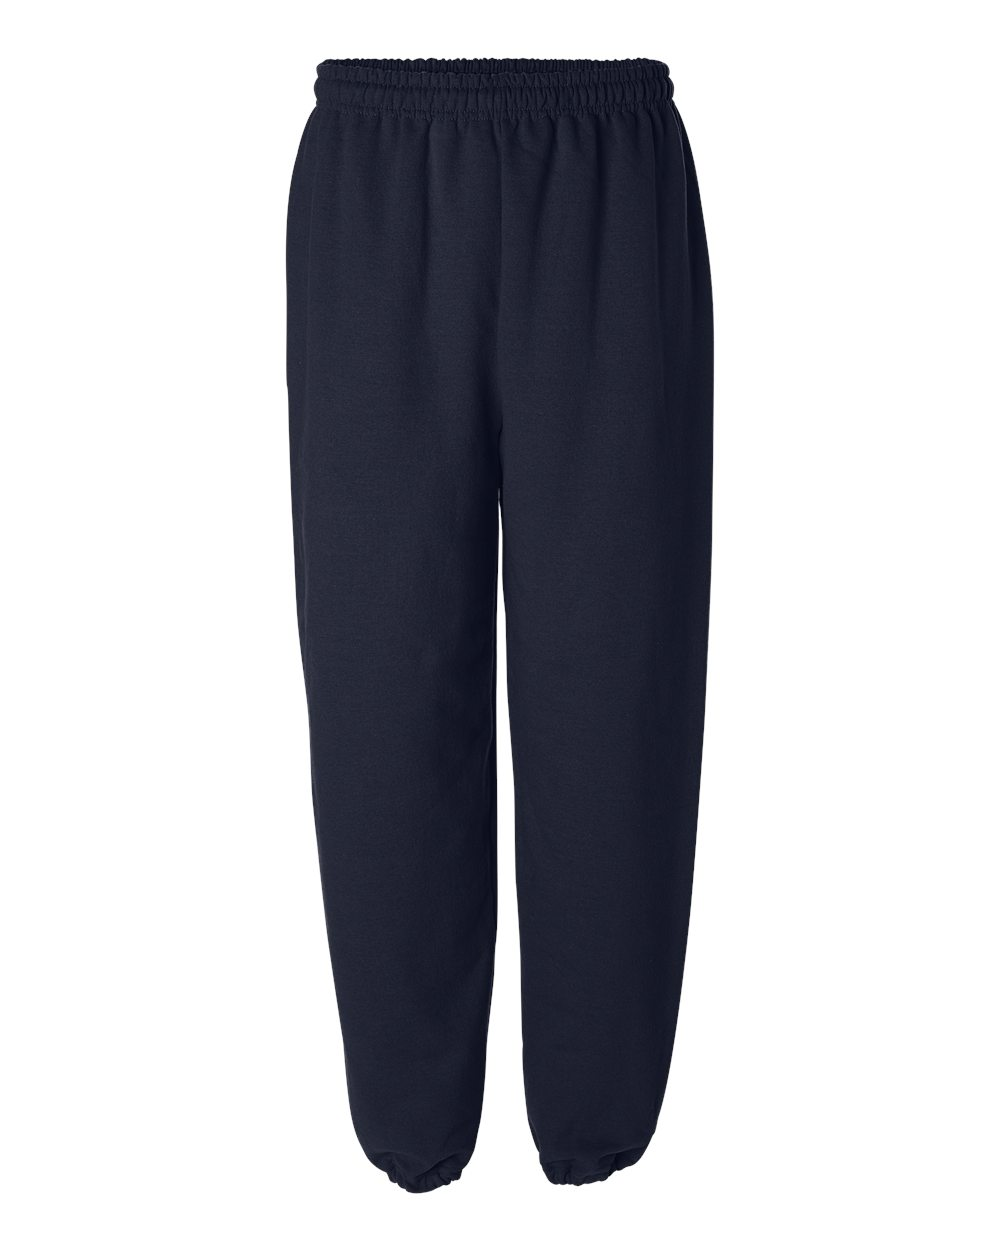 University of Akron Police Academy PT Sweatpant